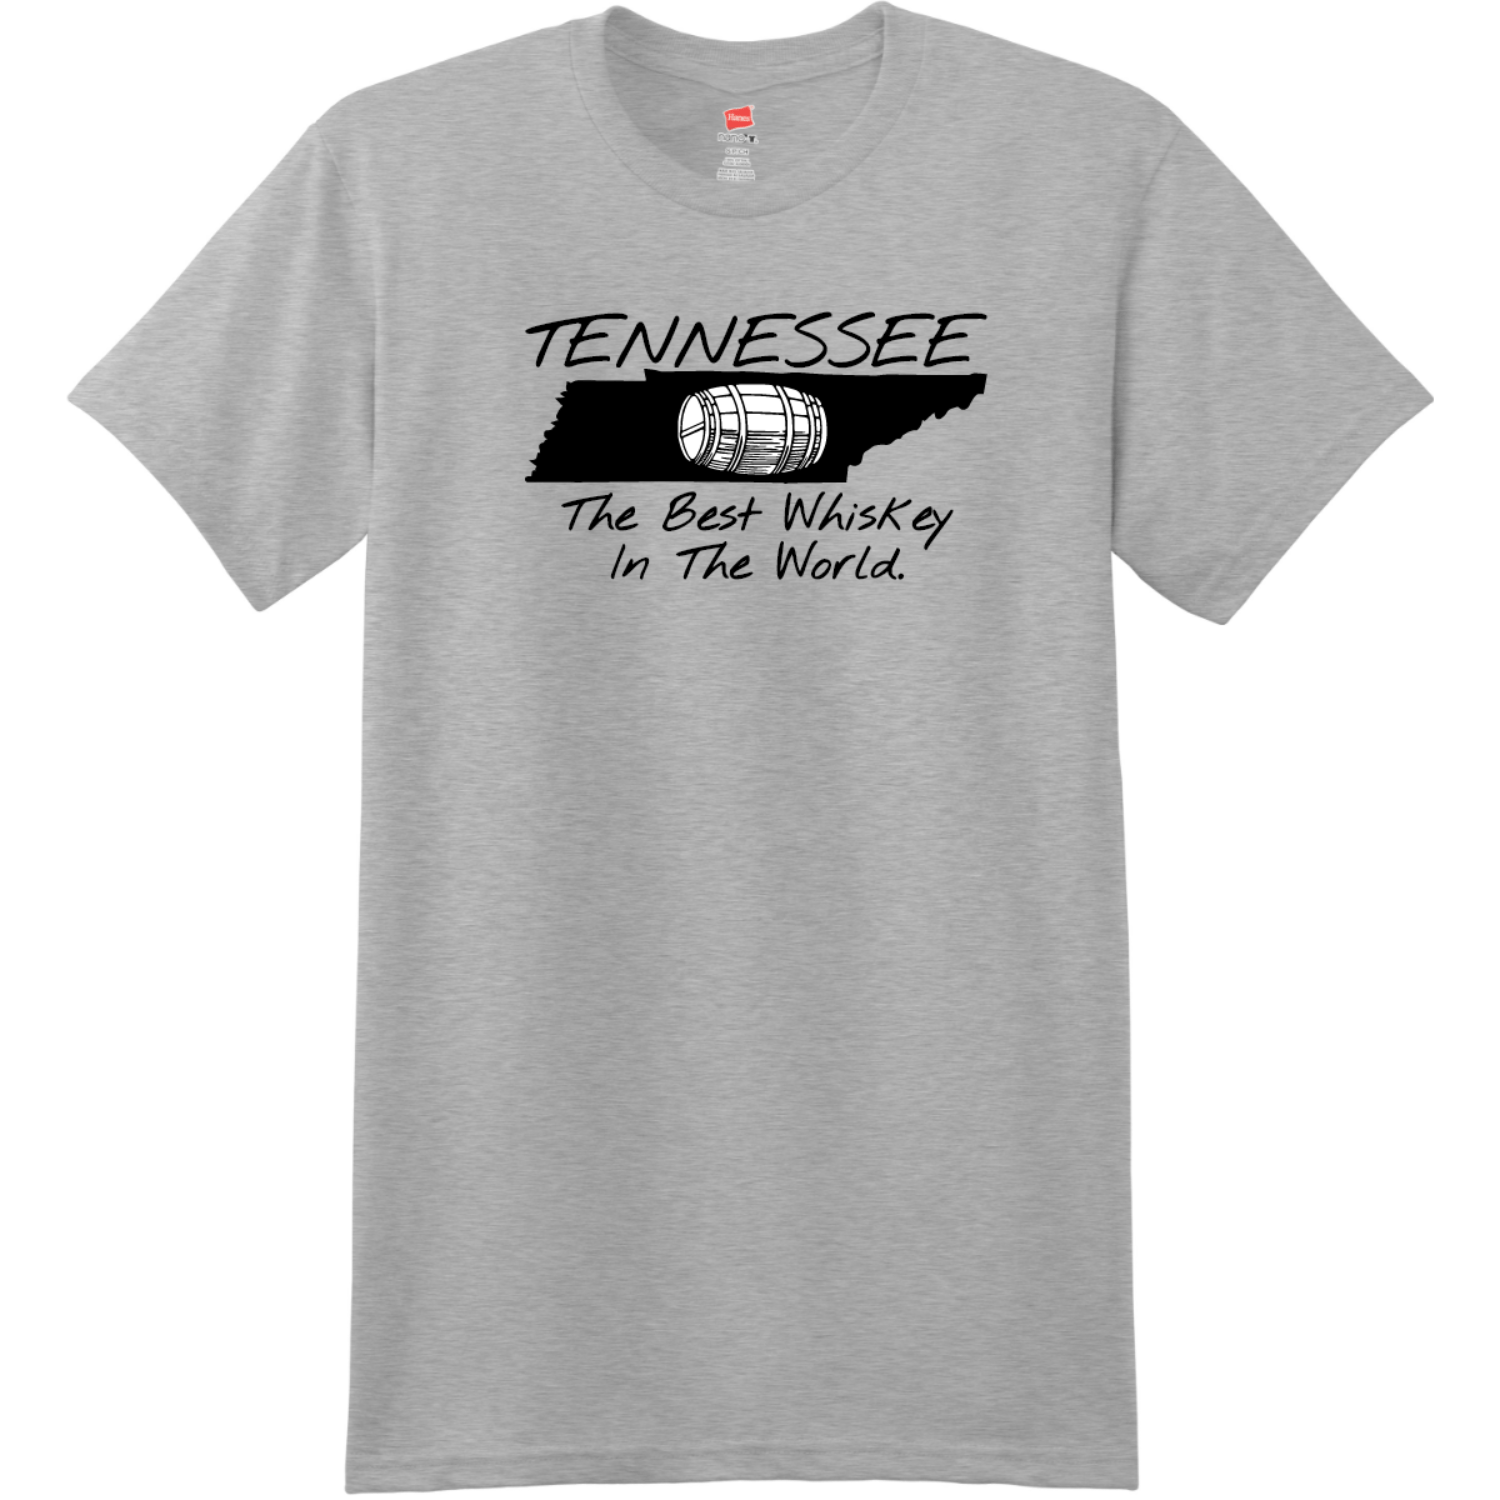 Tennessee Best Whiskey In The World T-Shirt Light Steel Hanes Nano 4980 Ringspun Cotton T Shirt